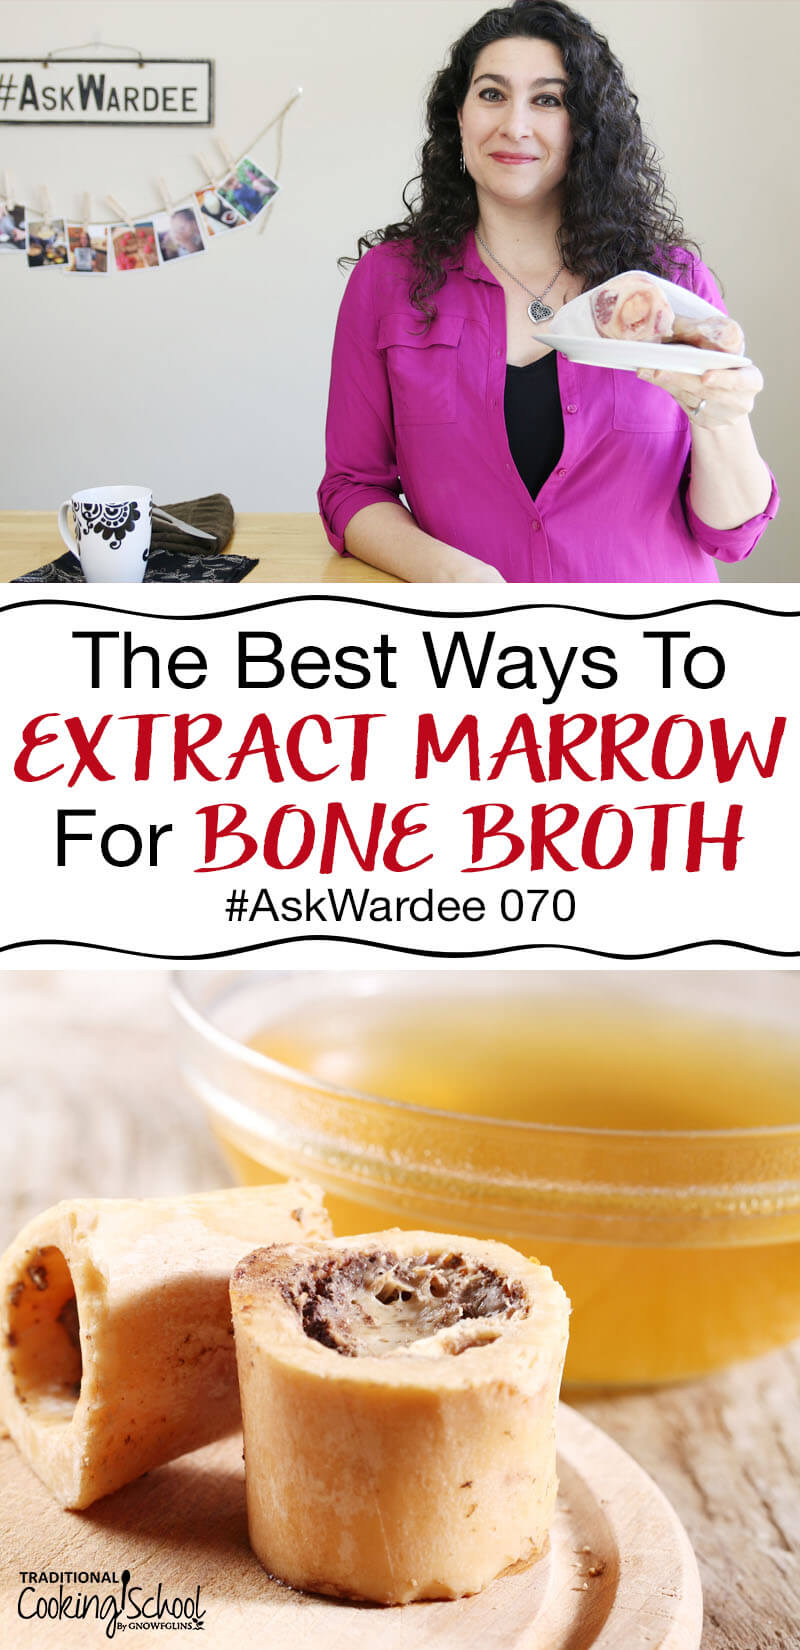 "Pinterest pin with two images. The top image is a woman holding a plate of bones. The second image is of marrow bones and a bowl of broth. Text overlay says, ""The Best Ways to Extract Marrow for Bone Broth #AskWardee 070"""